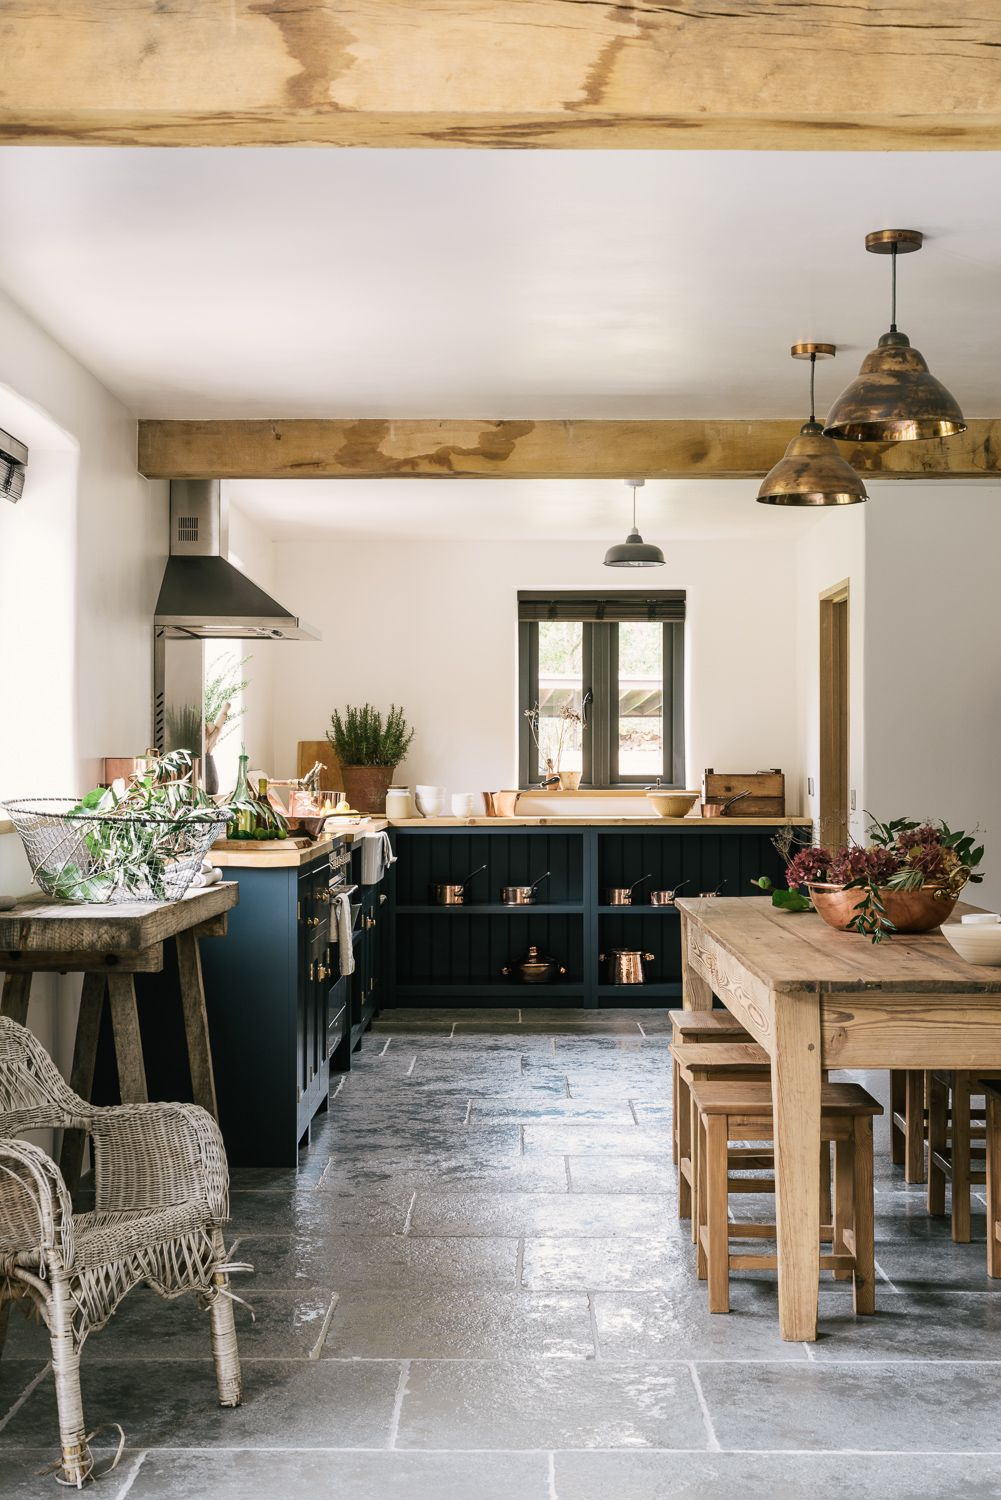 A Stylish Country Kitchen By Devol With Worn Grey Limestone Flooring By Floors Of Stone